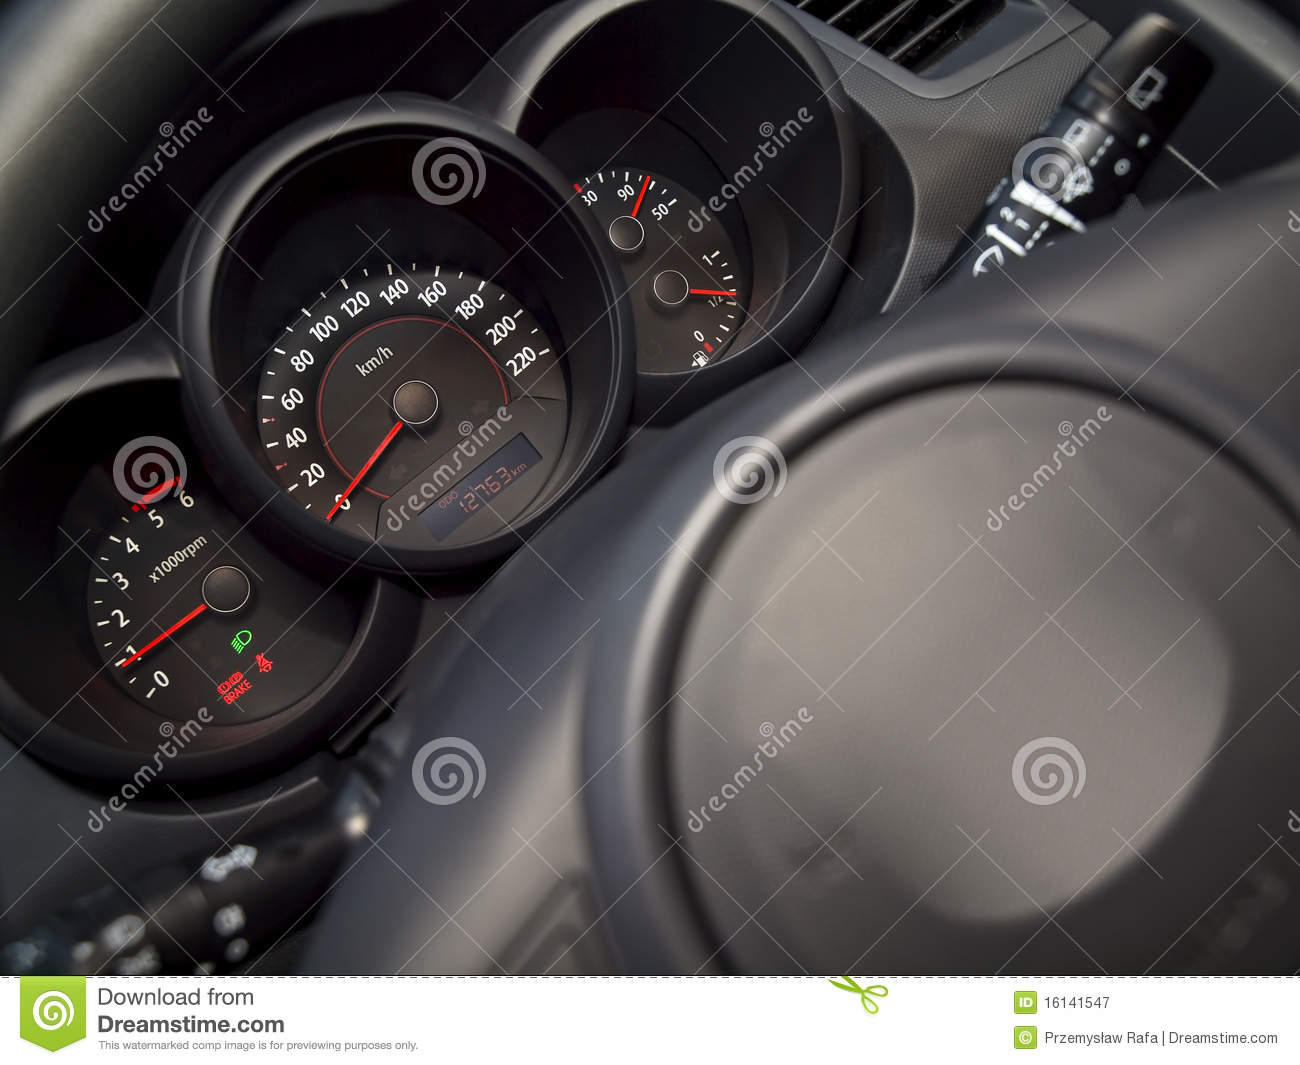 Behind The Steering Wheel : Behind the steering wheel royalty free stock photography